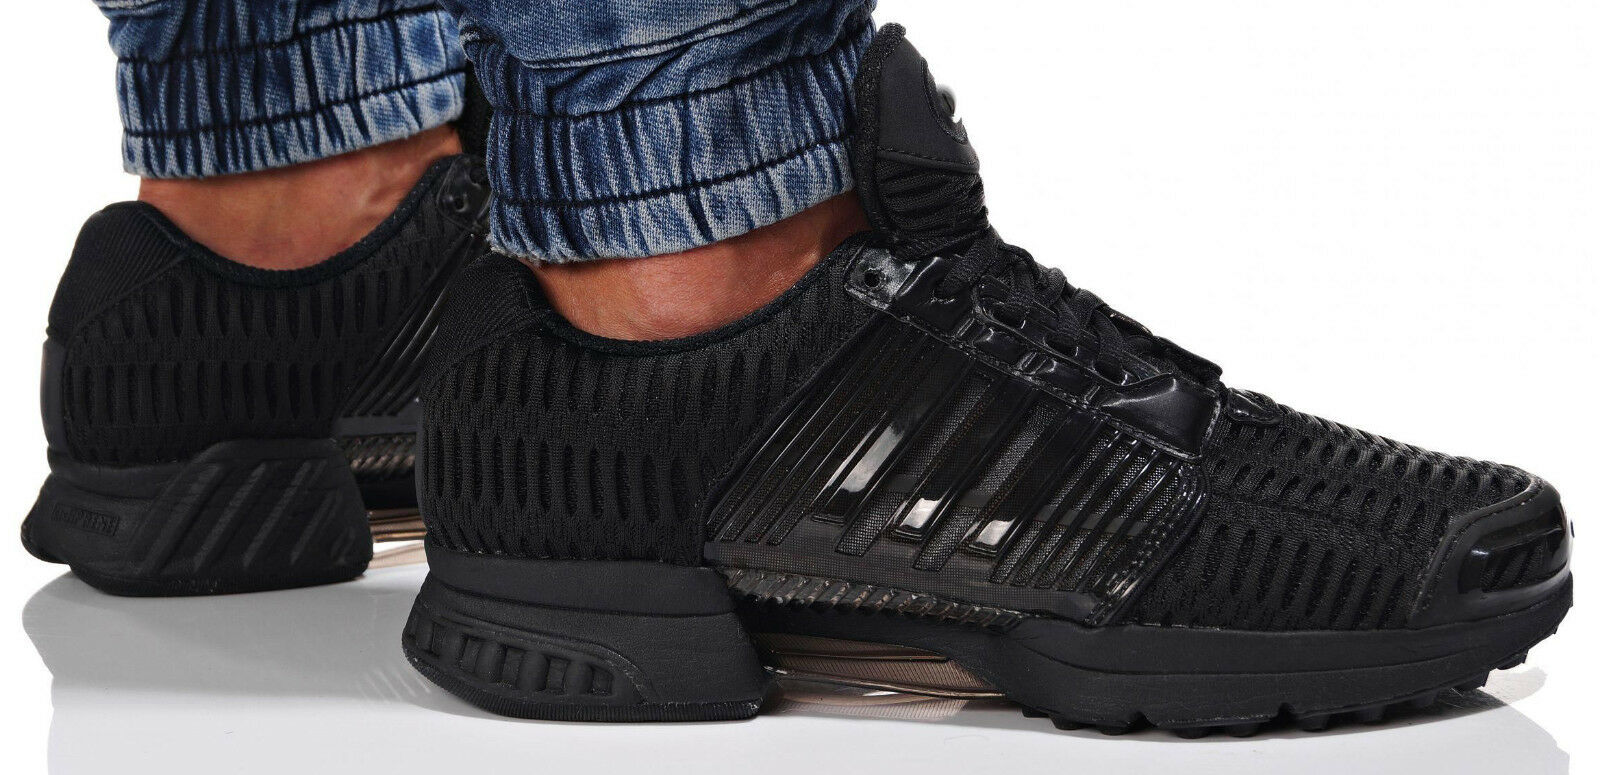 UK SIZE 4.5 - adidas ORIGINALS CLIMACOOL 1 TRAINERS - BLACK